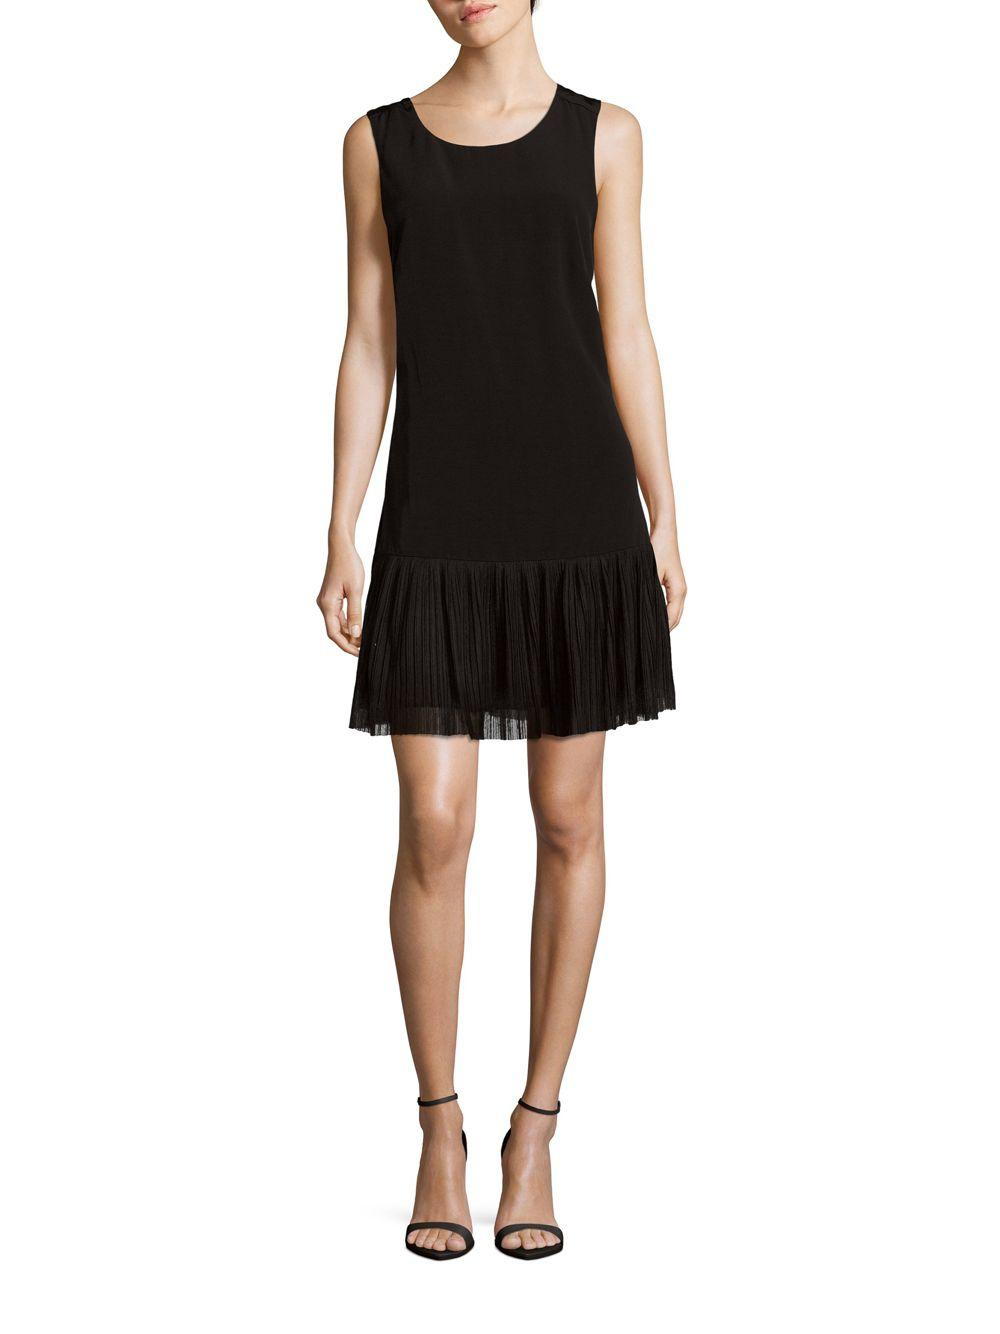 5d76c963148f2 Lyst - Sandro Replay Solid Scoopneck Dress in Black